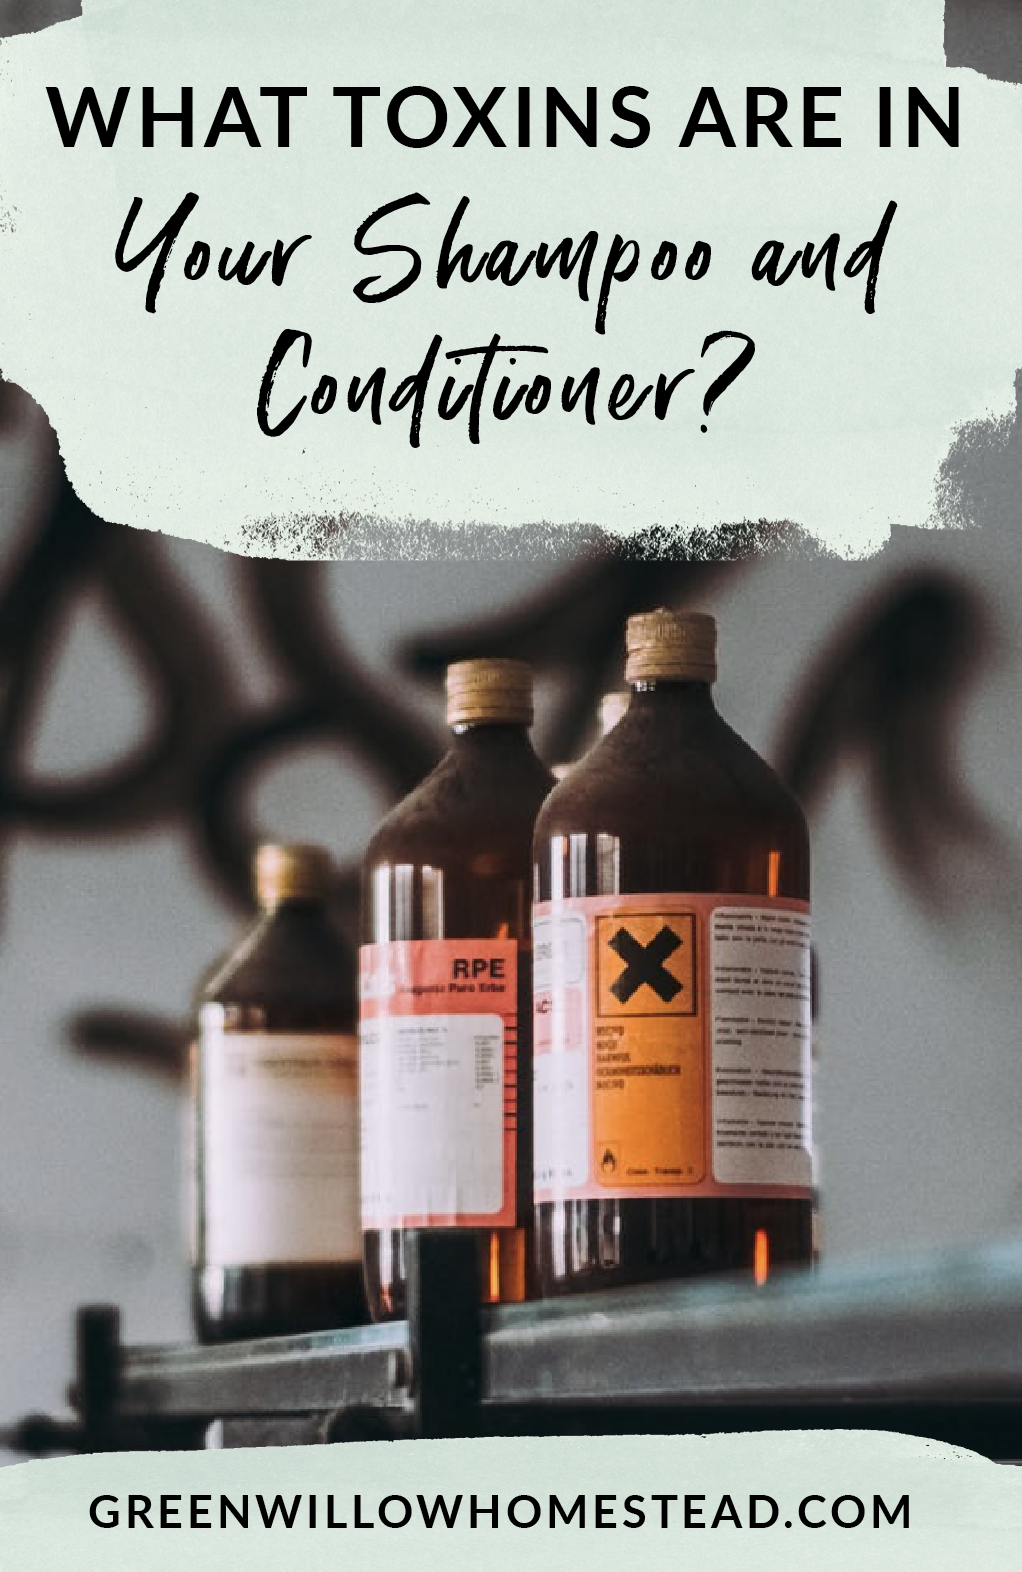 What toxins are in shampoo and conditioner and should you be concerned?